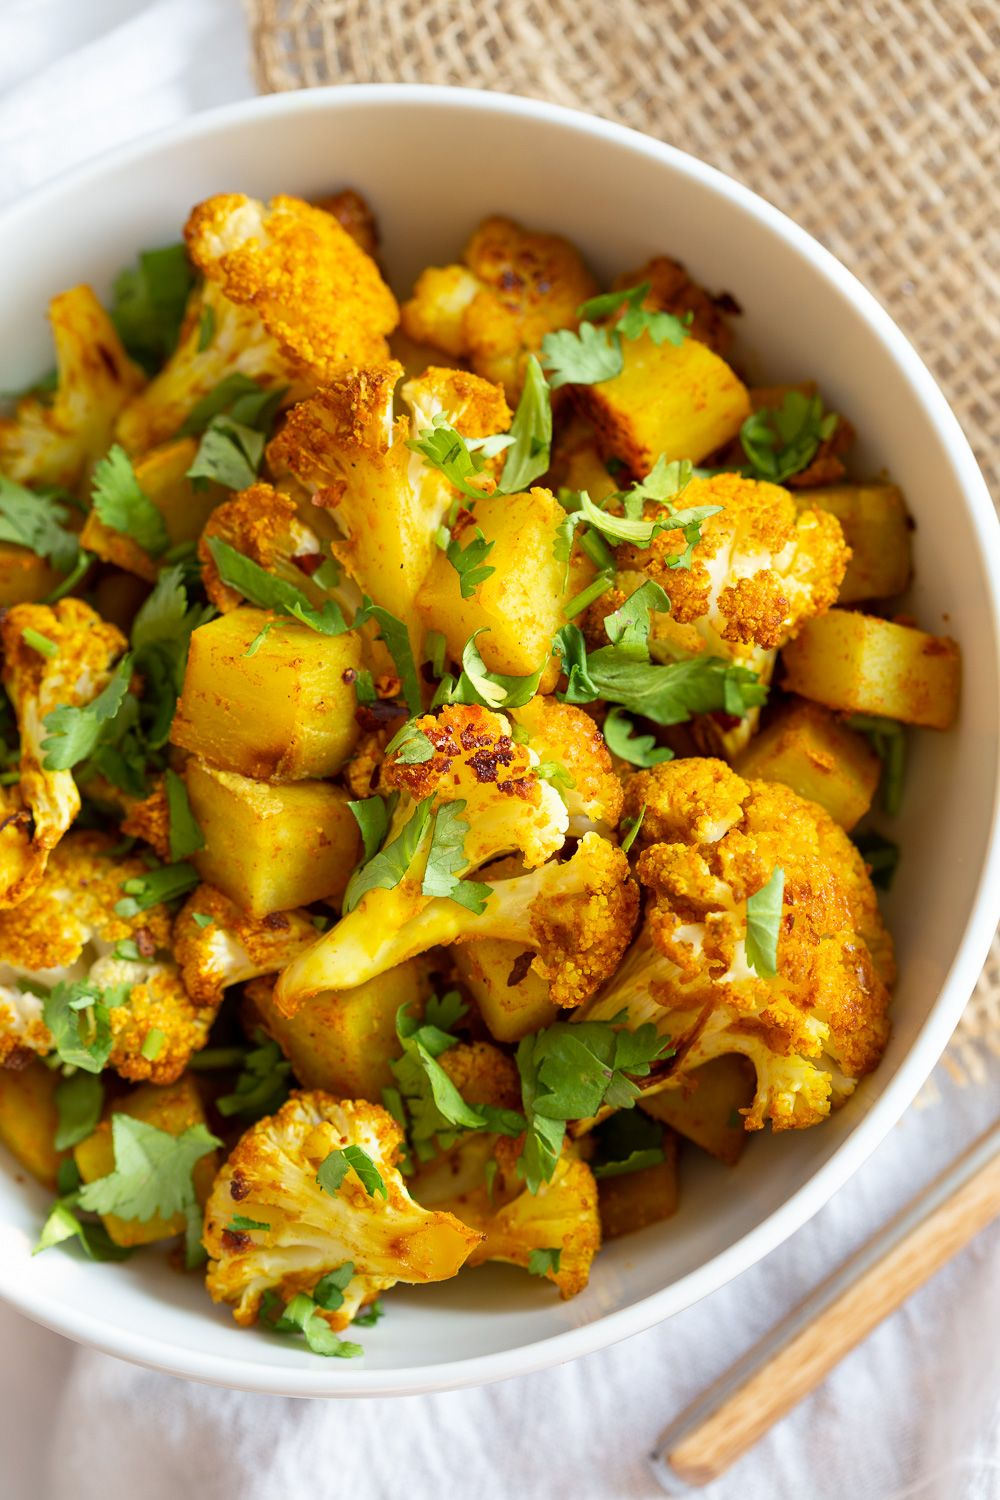 Baked Aloo Gobi Vegan Recipe (Indian Spiced Potato Cauliflower) #indianfood